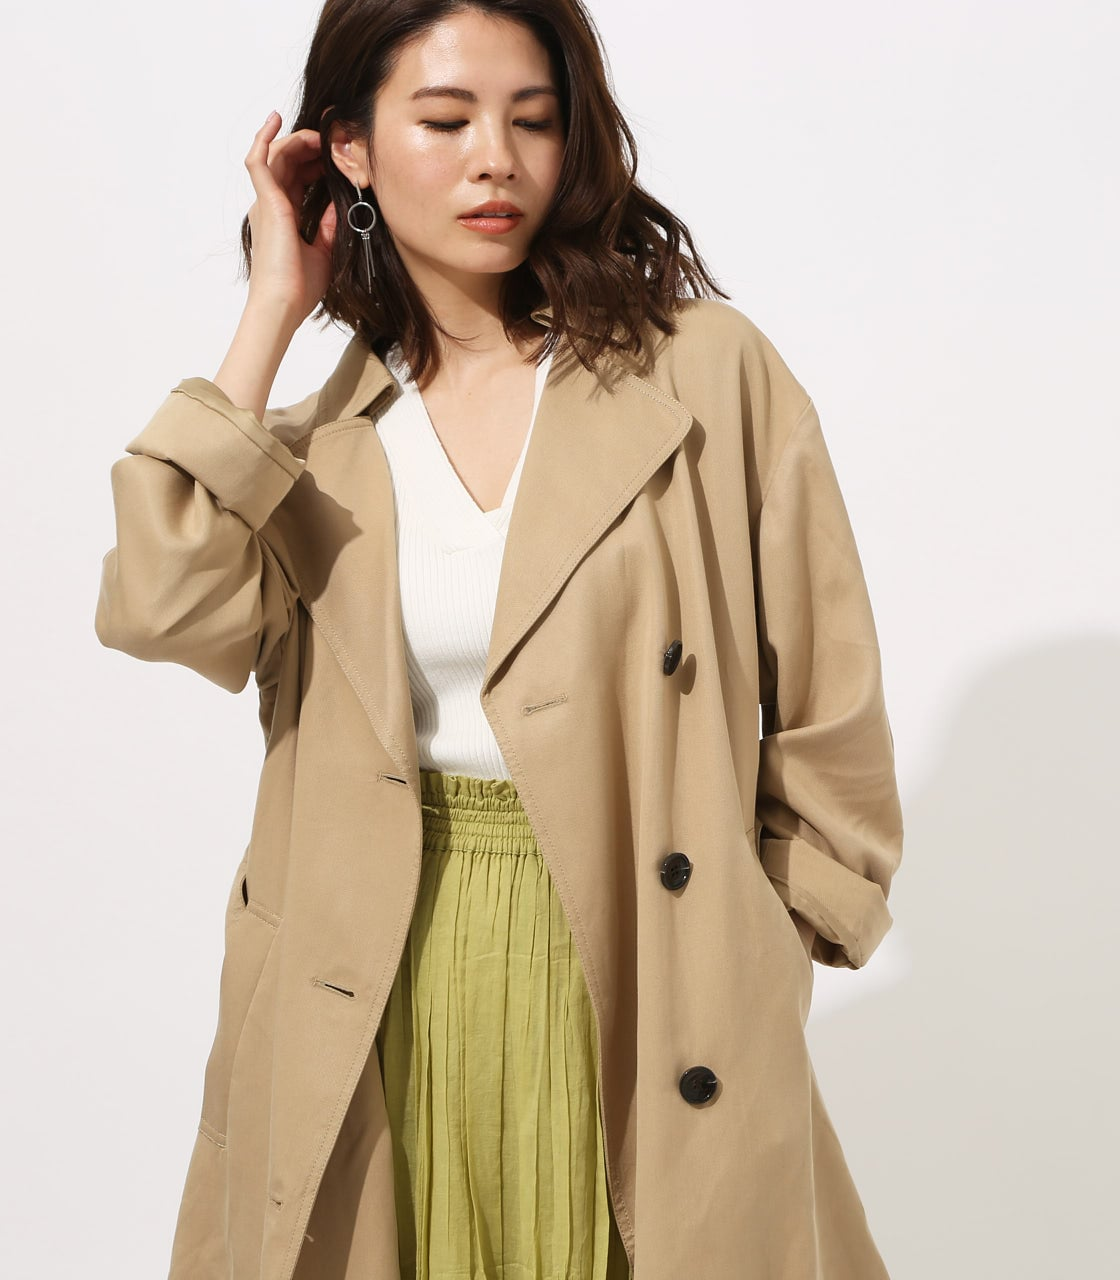 LYOCELL TRENCH COAT 【MOOK49掲載 90015】 詳細画像 BEG 2